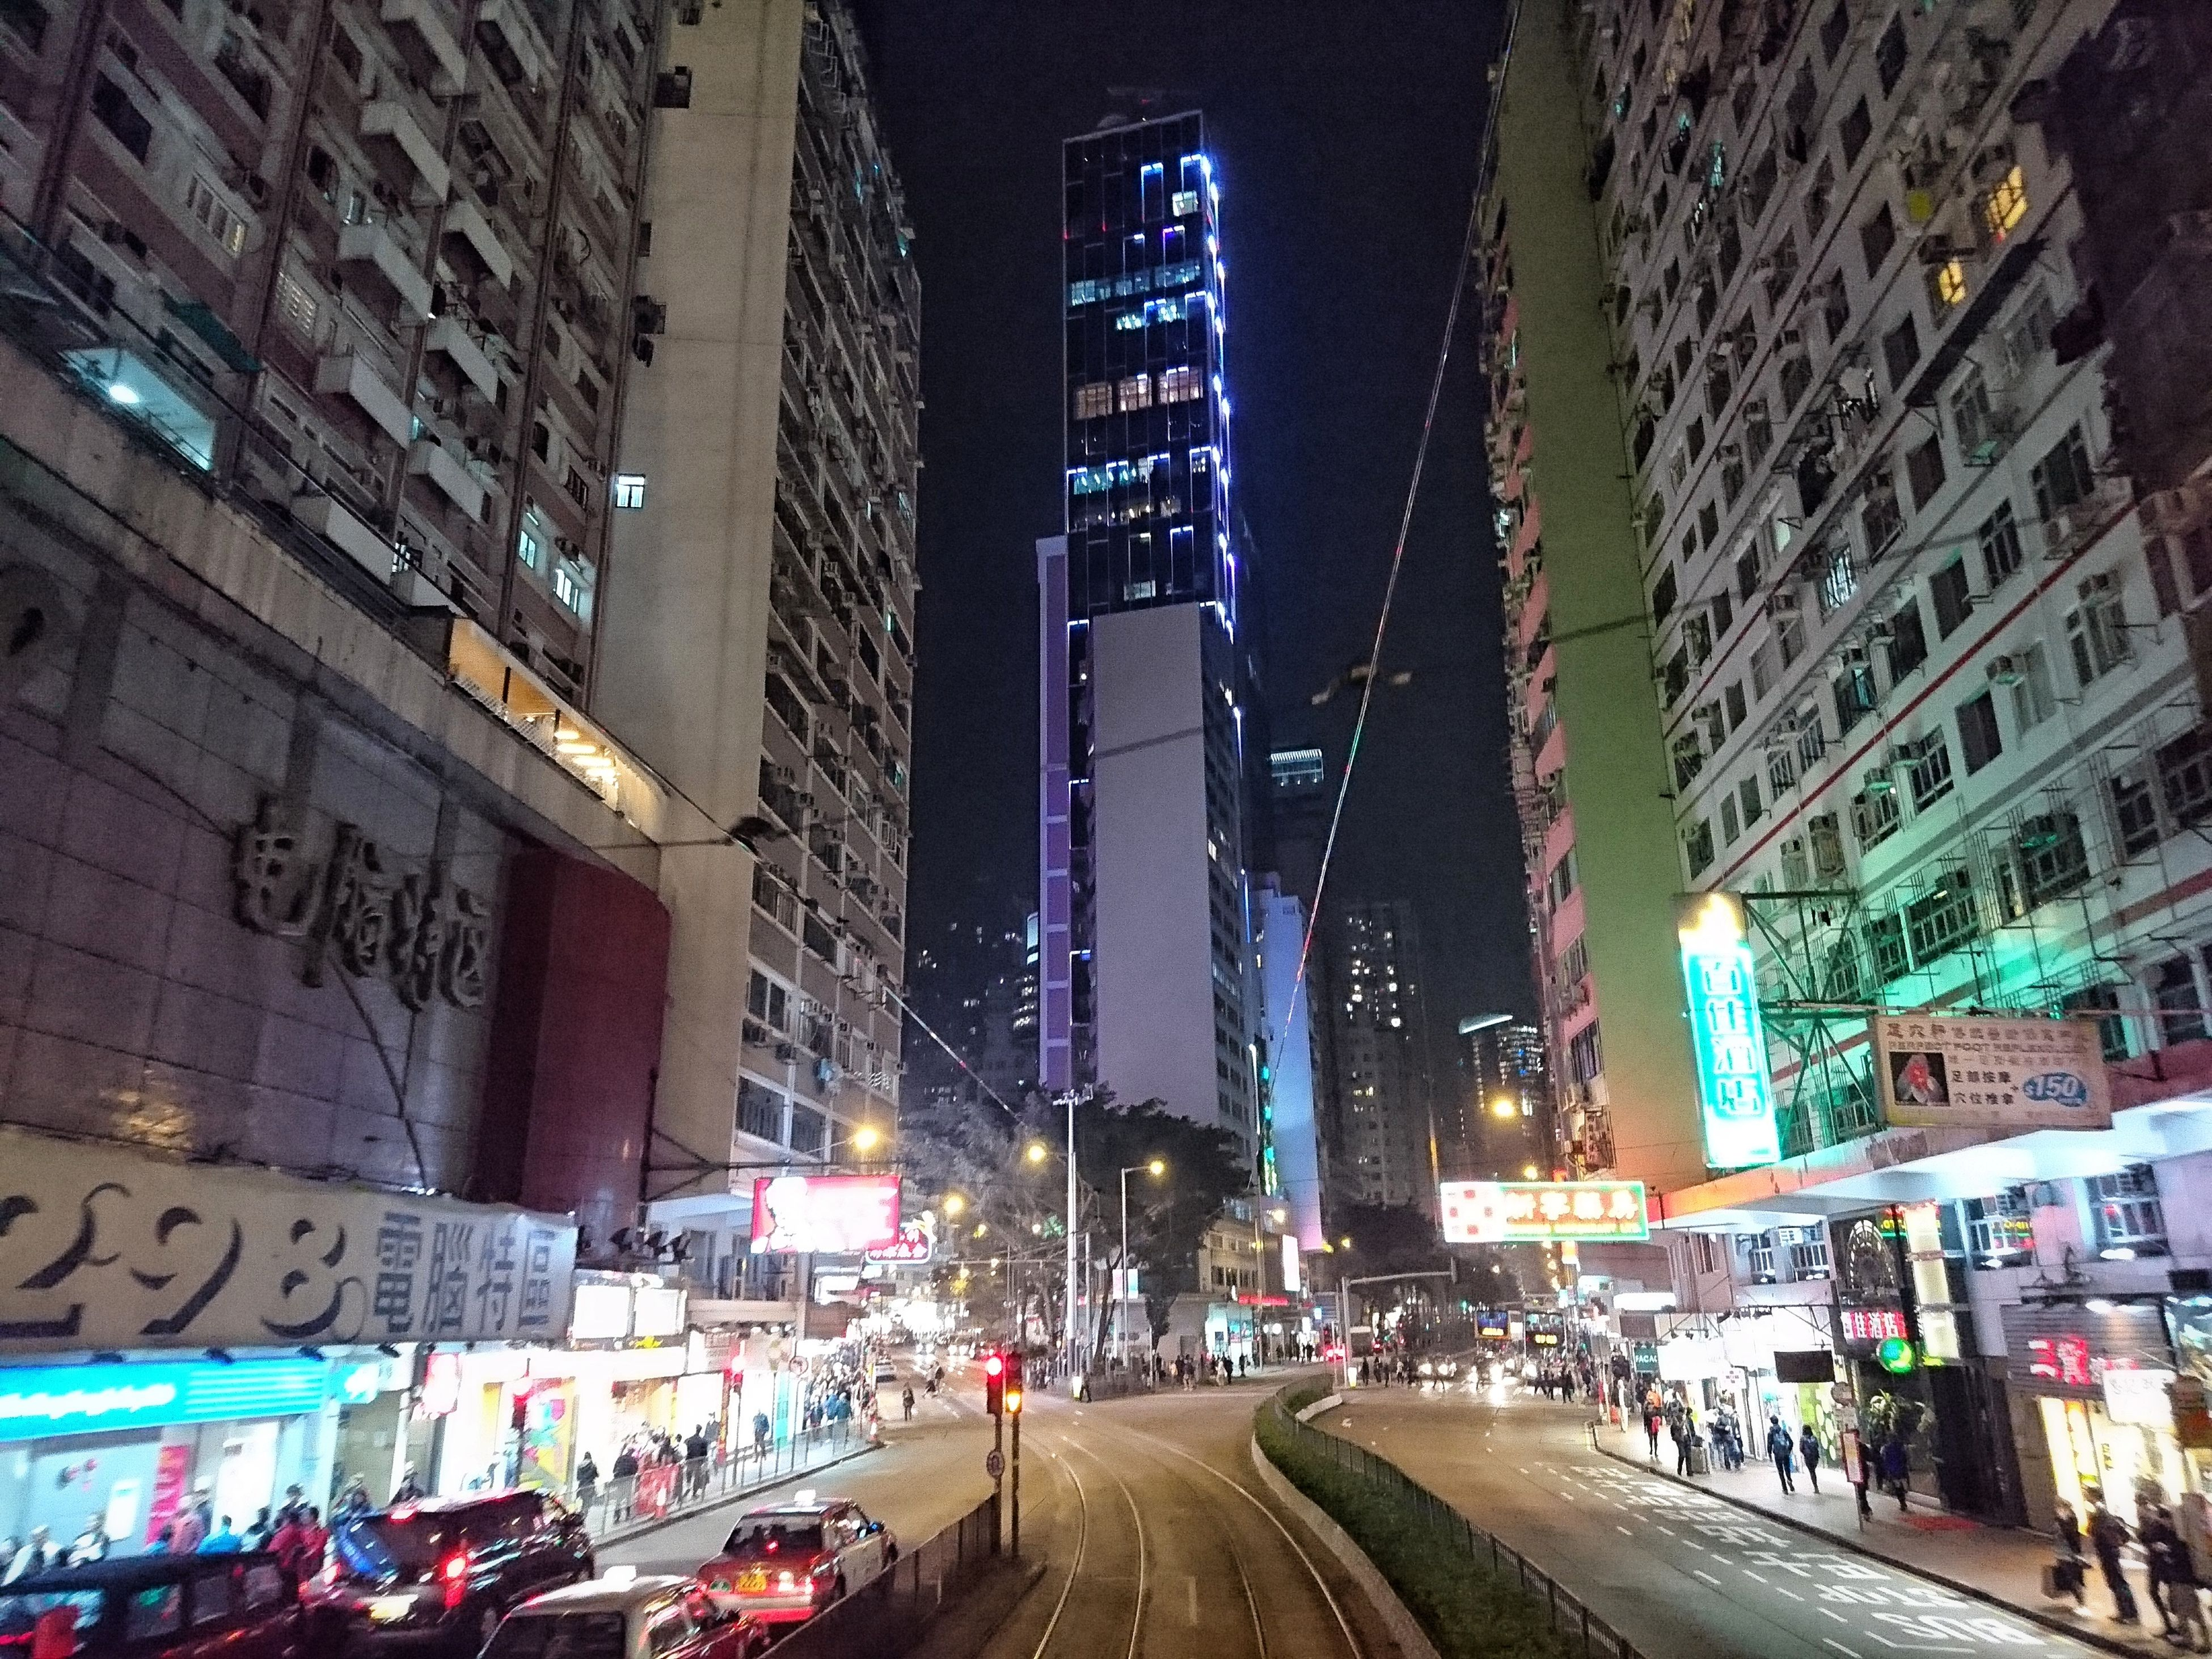 architecture, illuminated, building exterior, night, built structure, city, skyscraper, modern, transportation, street, road, travel destinations, city life, communication, real people, outdoors